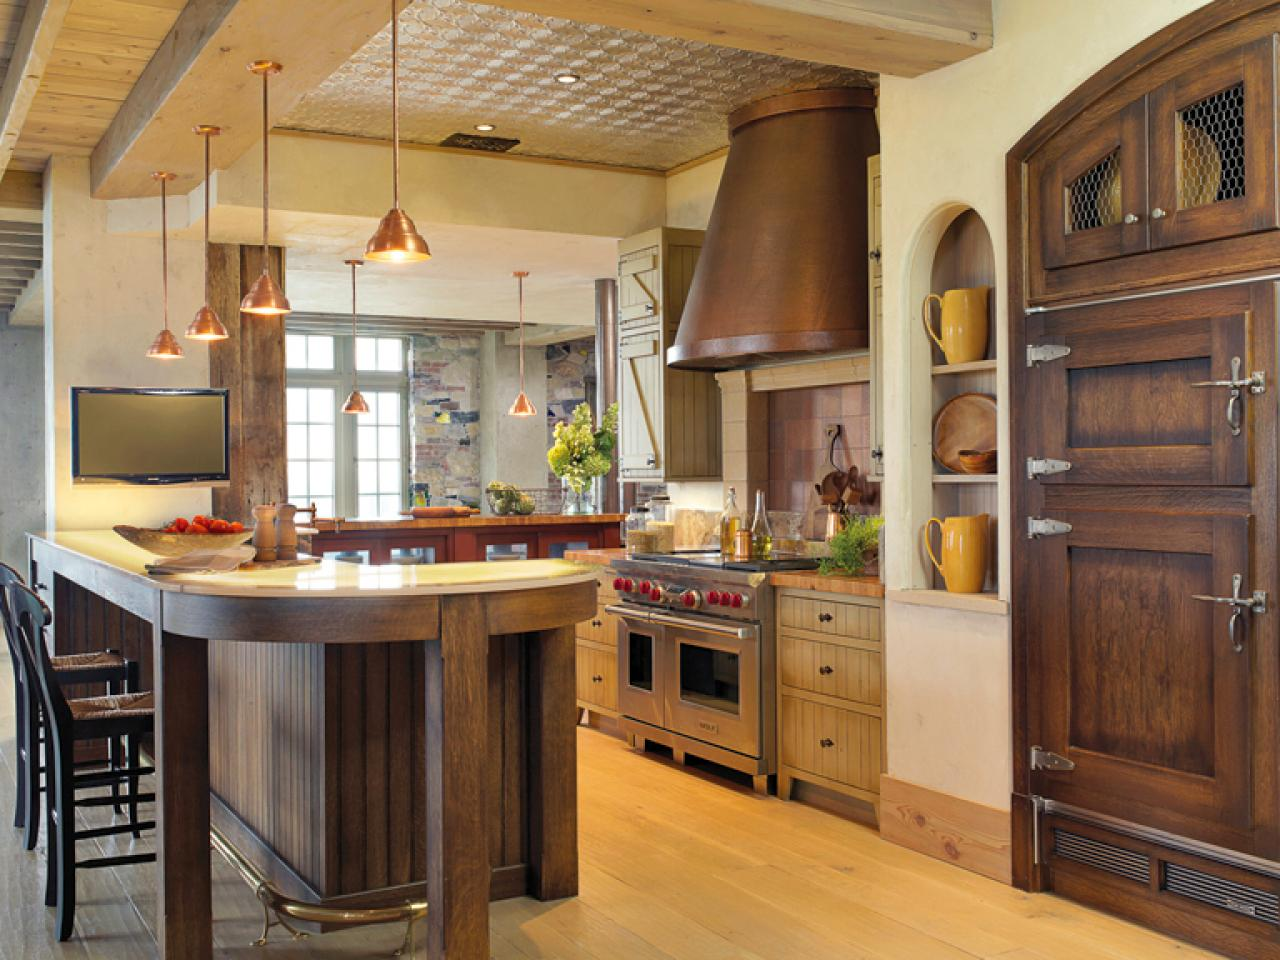 Rustic Elegance In The Kitchen Kitchen Designs Choose Kitchen Layouts Remodeling Materials